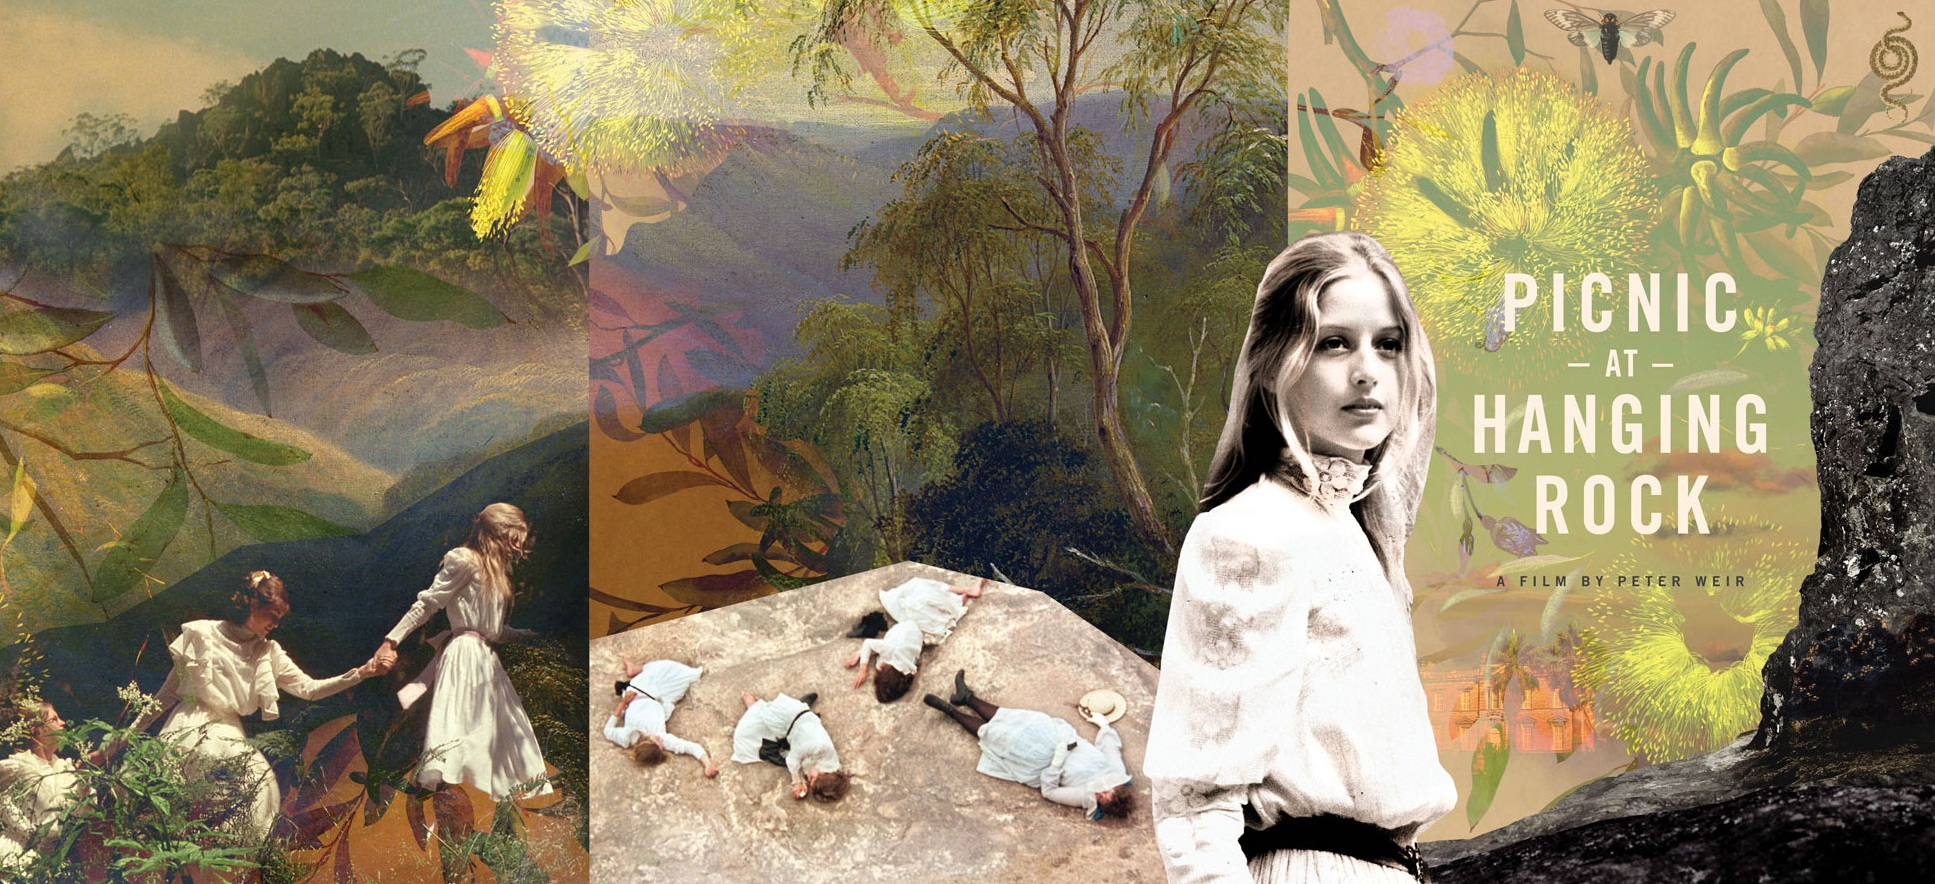 Artwork for the Collector's Edition DVD of  Picnic at Hanging Rock,  directed by Peter Weir, starring Anne Louise Lambert, Rachel Roberts, Jackie Weaver 1975